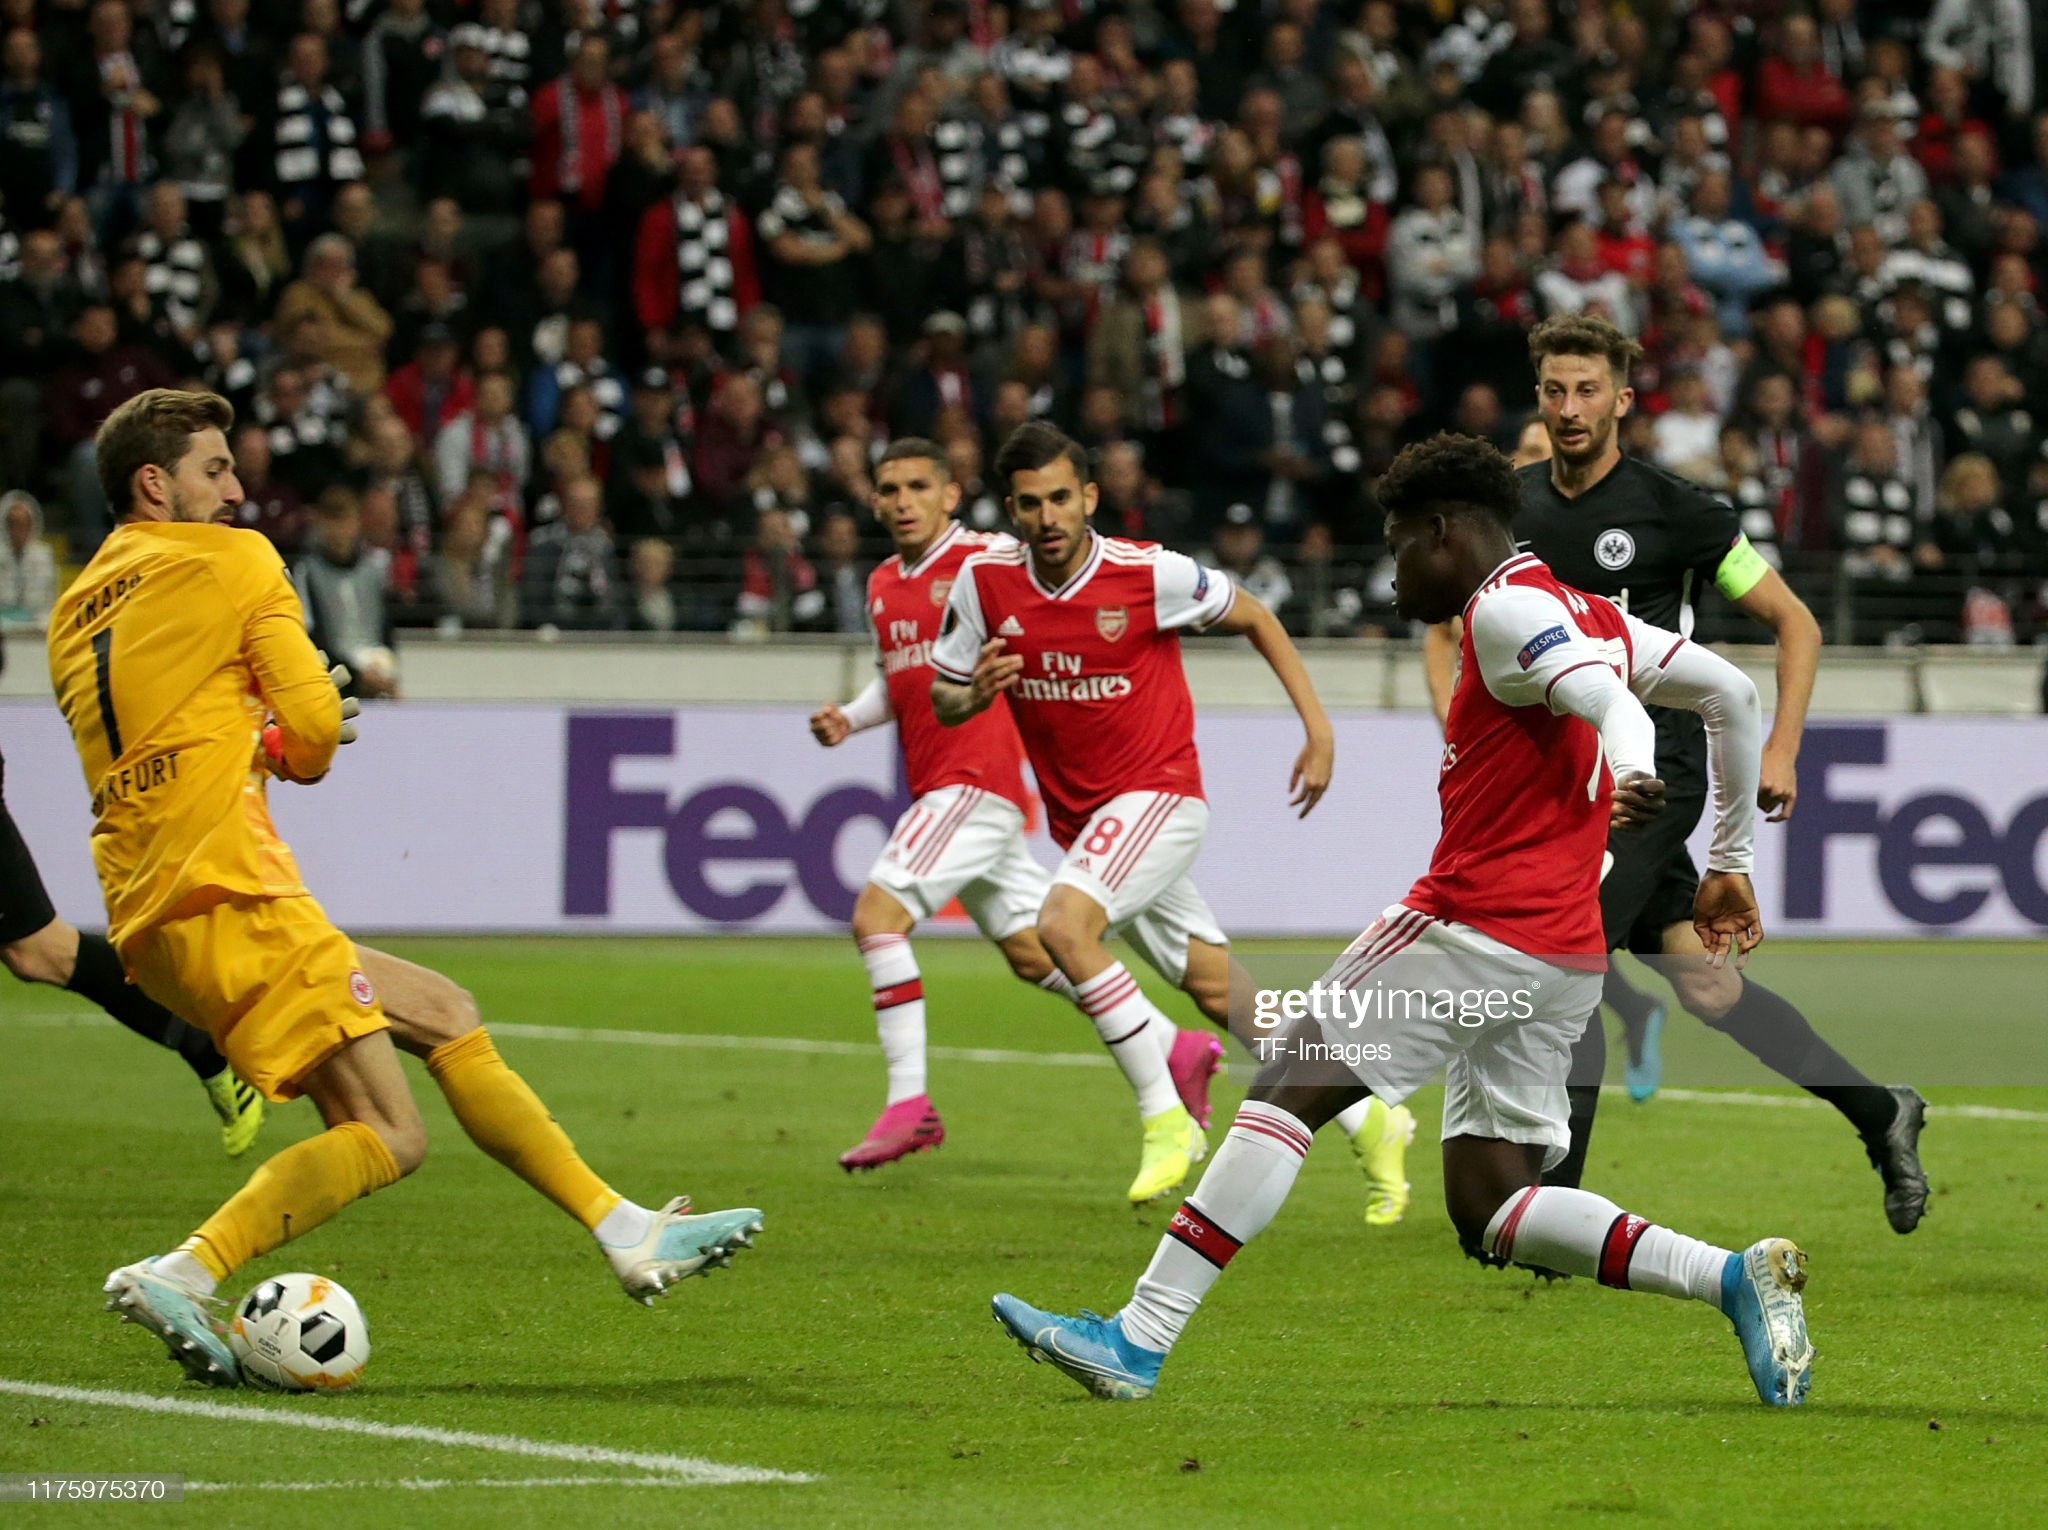 Arsenal v Eintracht Frankfurt preview, prediction and odds